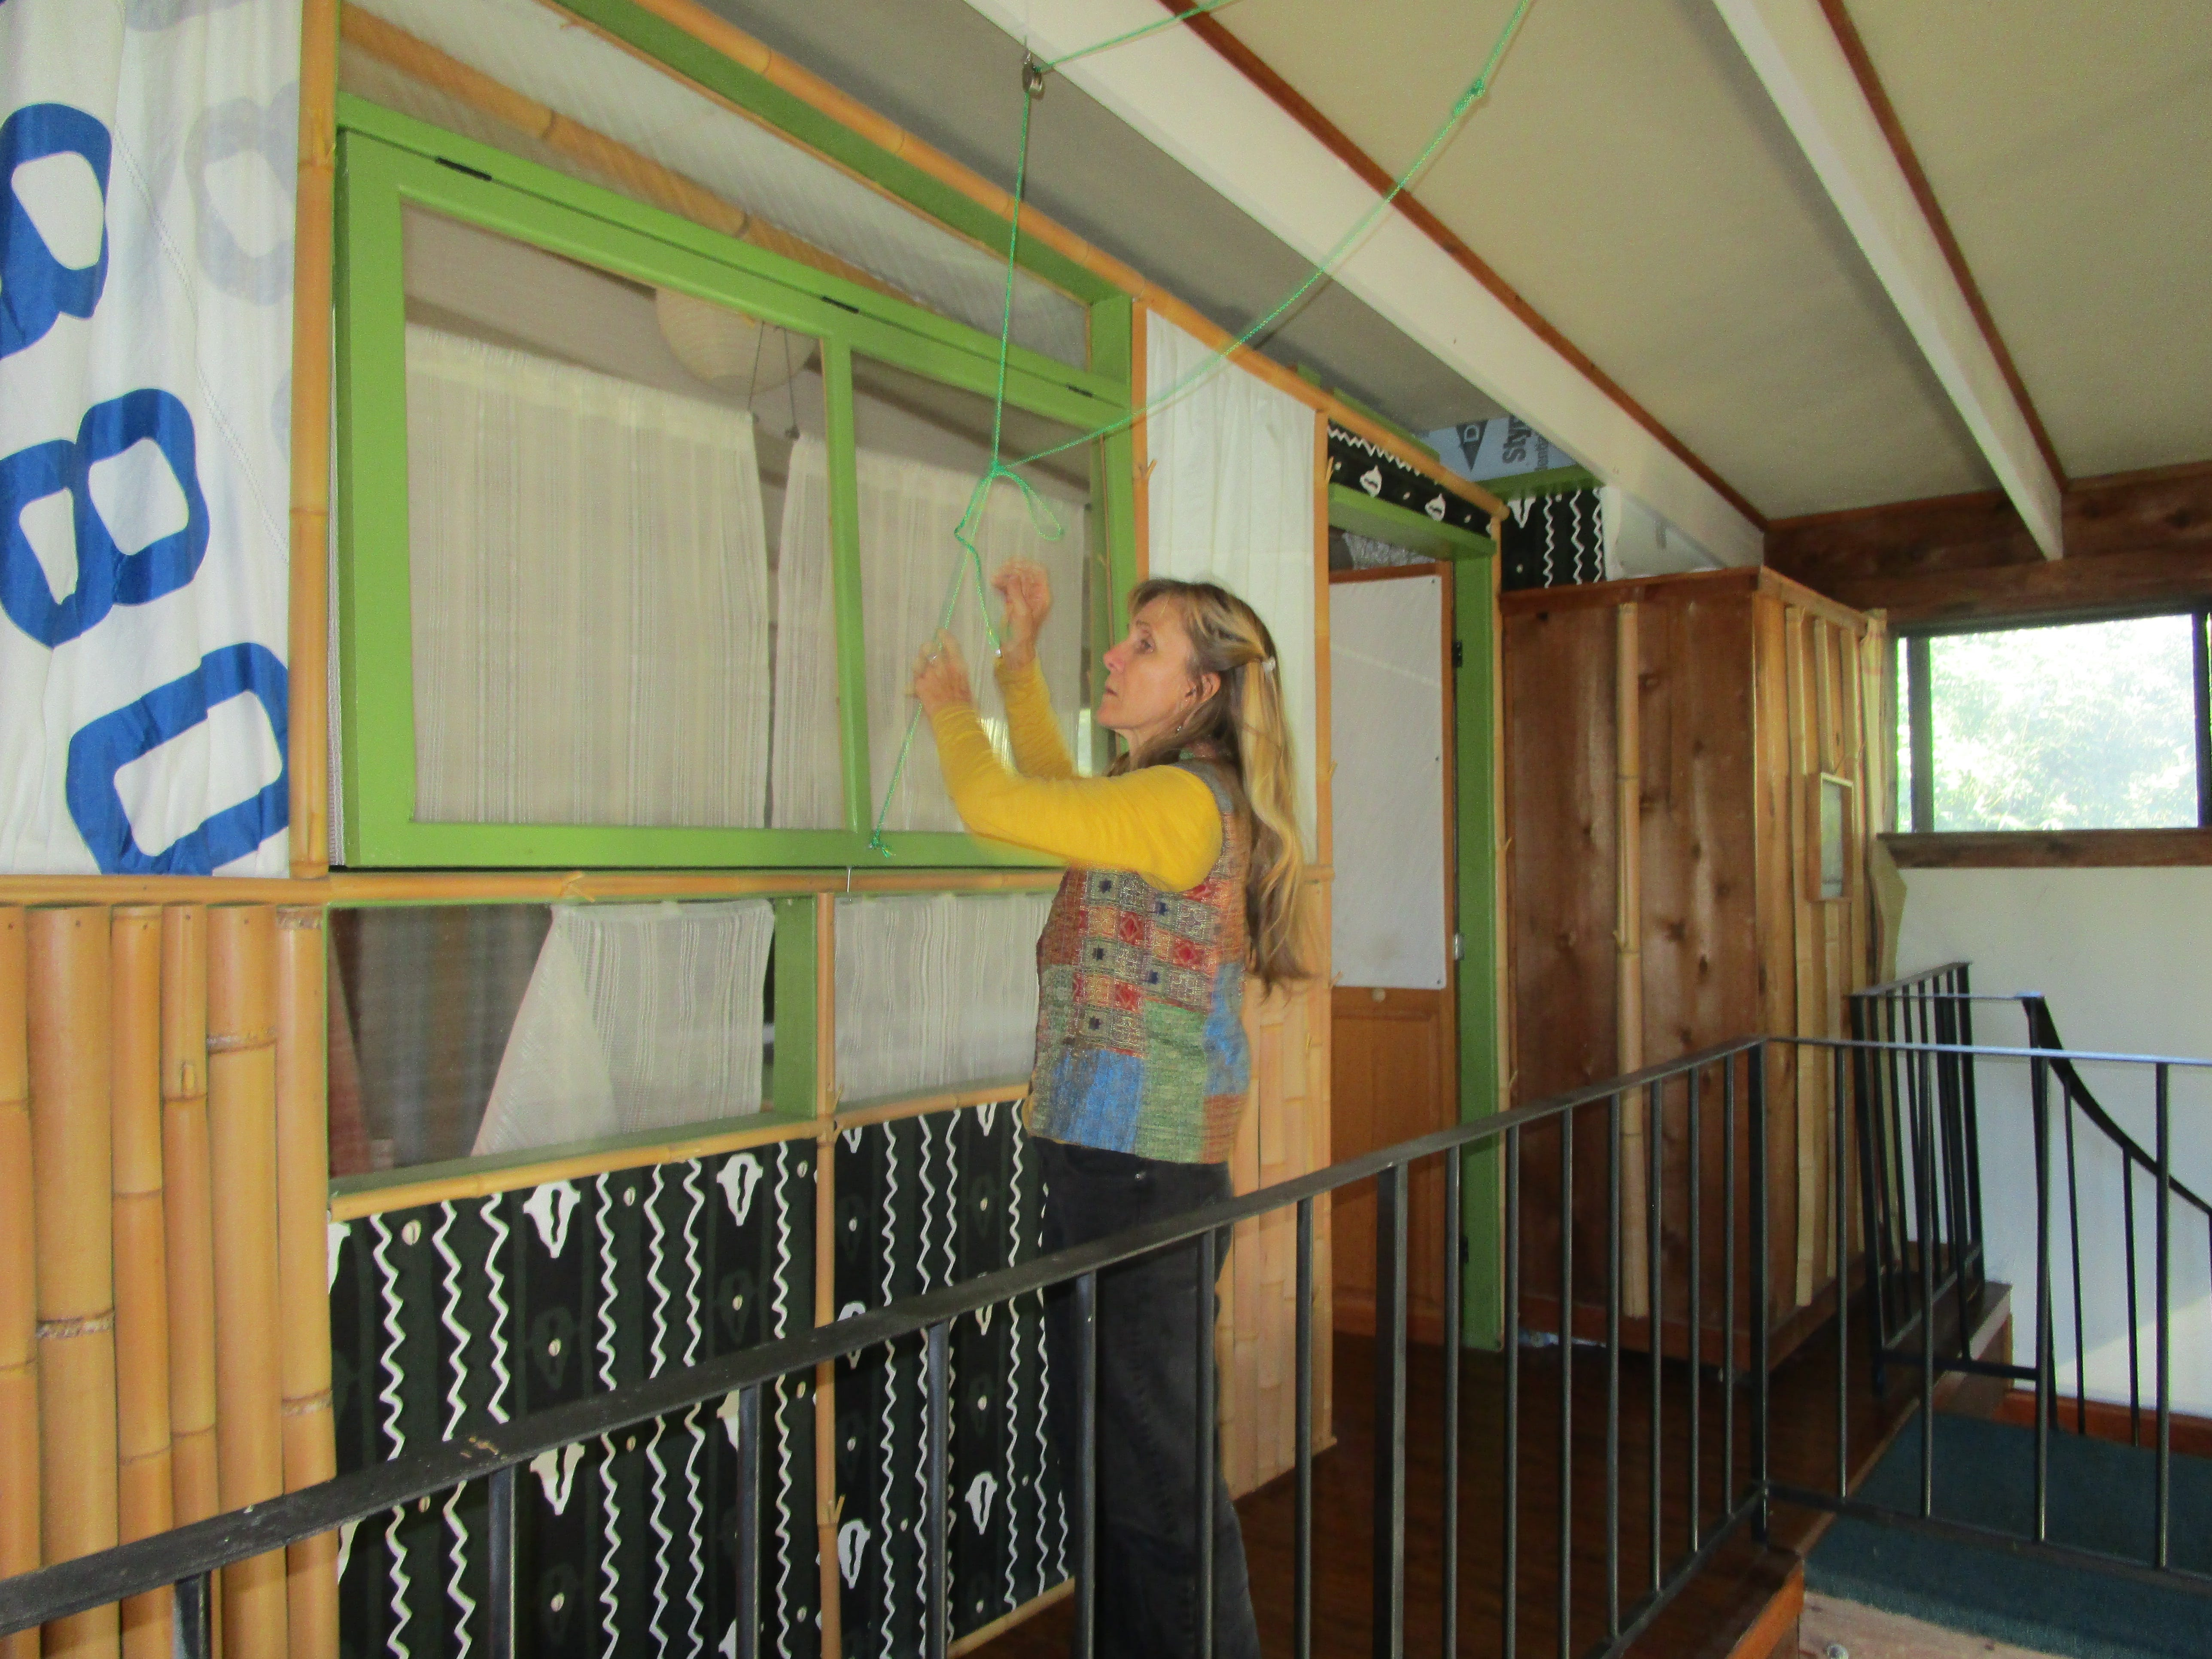 Kathleen Whitehurst shows the window she made herself.